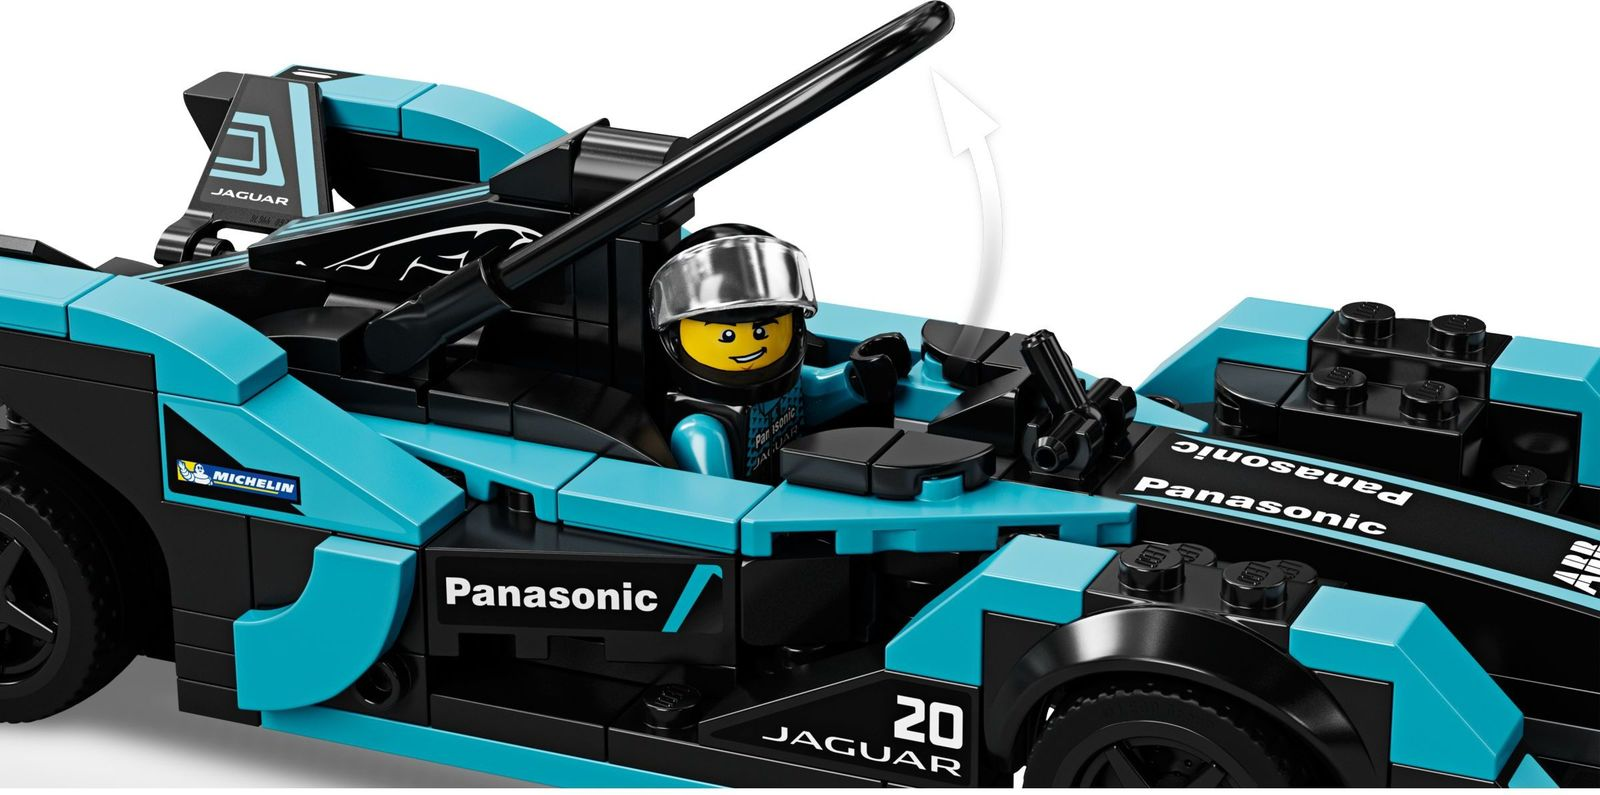 LEGO Speed Champions: Formula E Panasonic Jaguar Racing GEN2 car & Jaguar I-PACE eTROPHY - (76898)